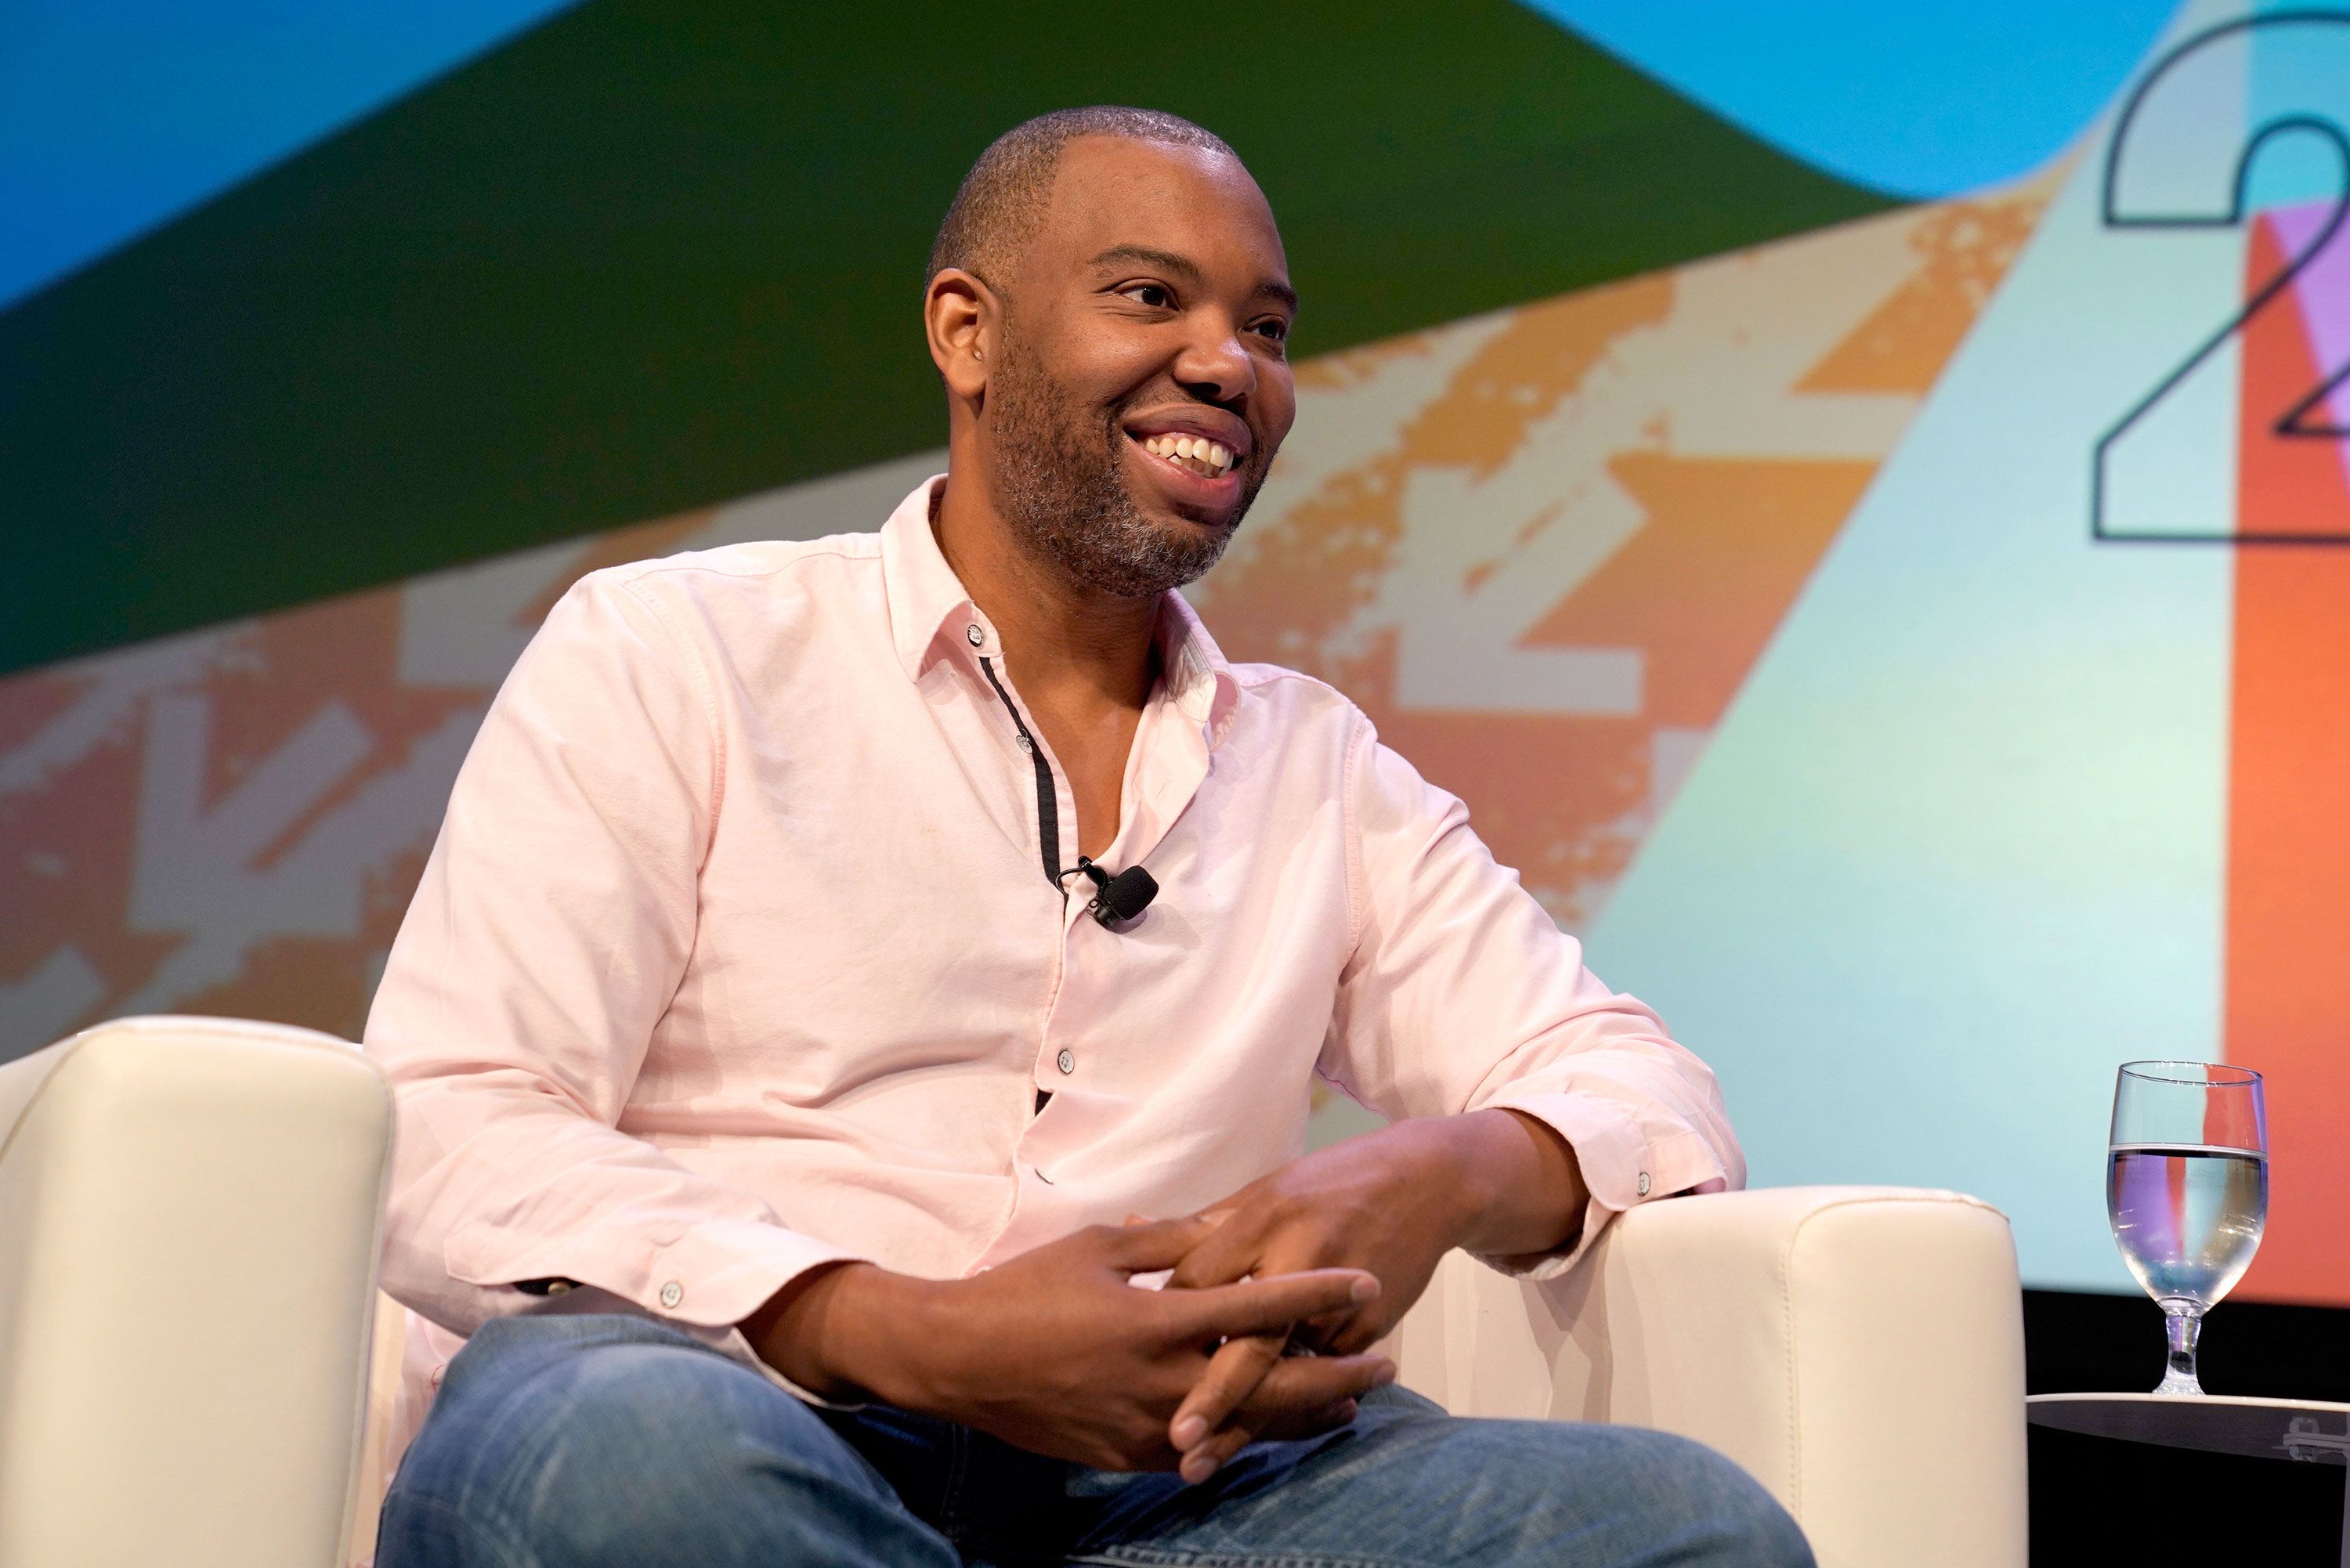 Ta-Nehisi Coates is guest editing the September issue of Vanity Fair